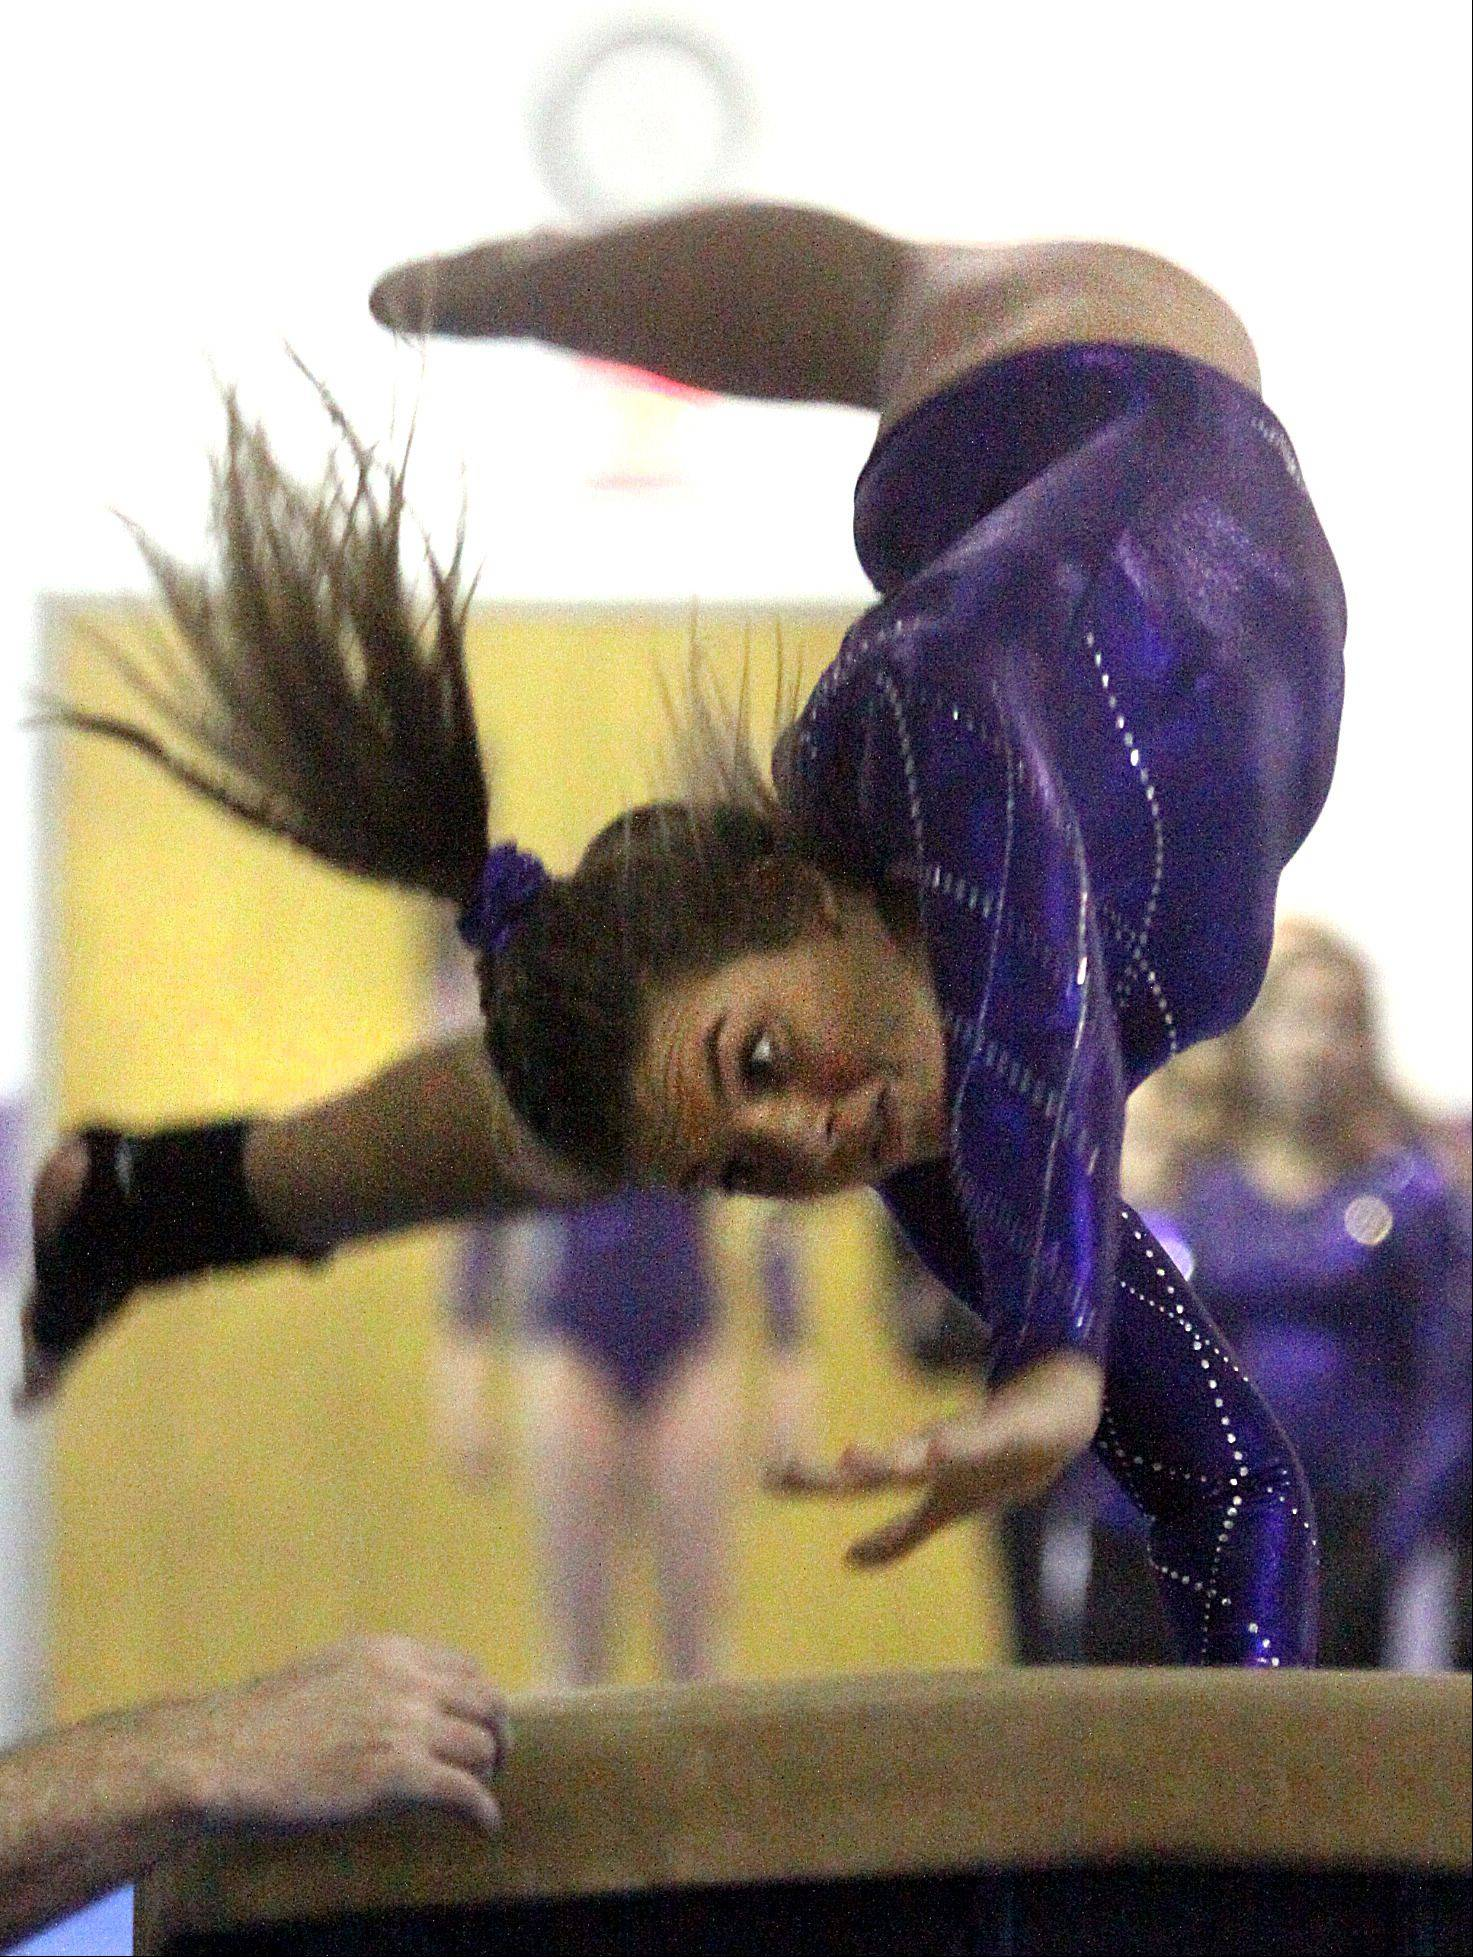 St. Charles co-op's Jesi Ortiz participates in the vault competition during a gymnastics meet at St. Charles Gymnastics Academy on Monday night.